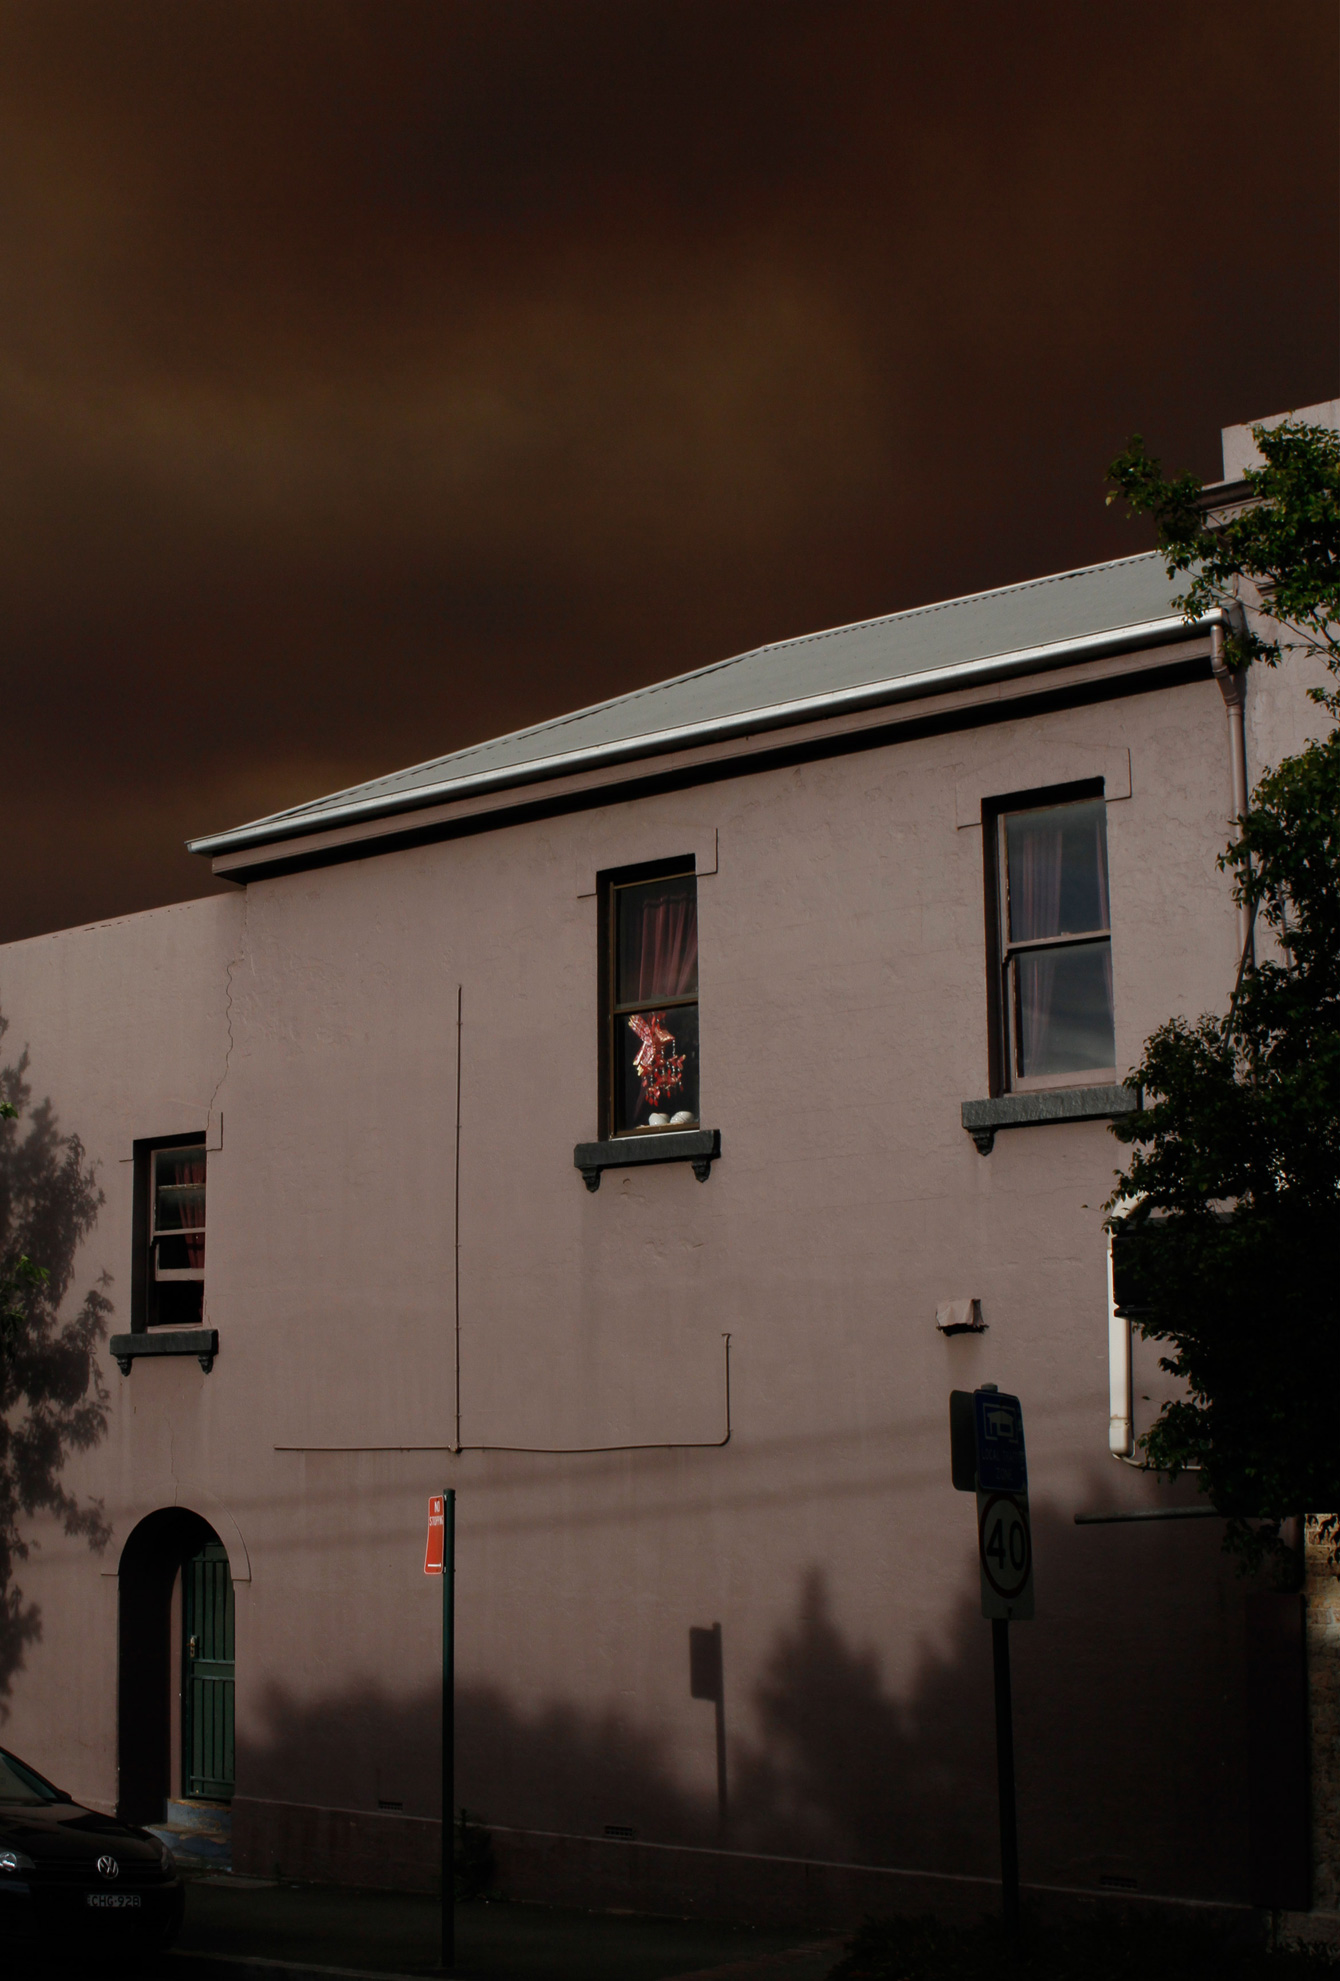 sydney-inner-west-2-erskineville-james-watkins